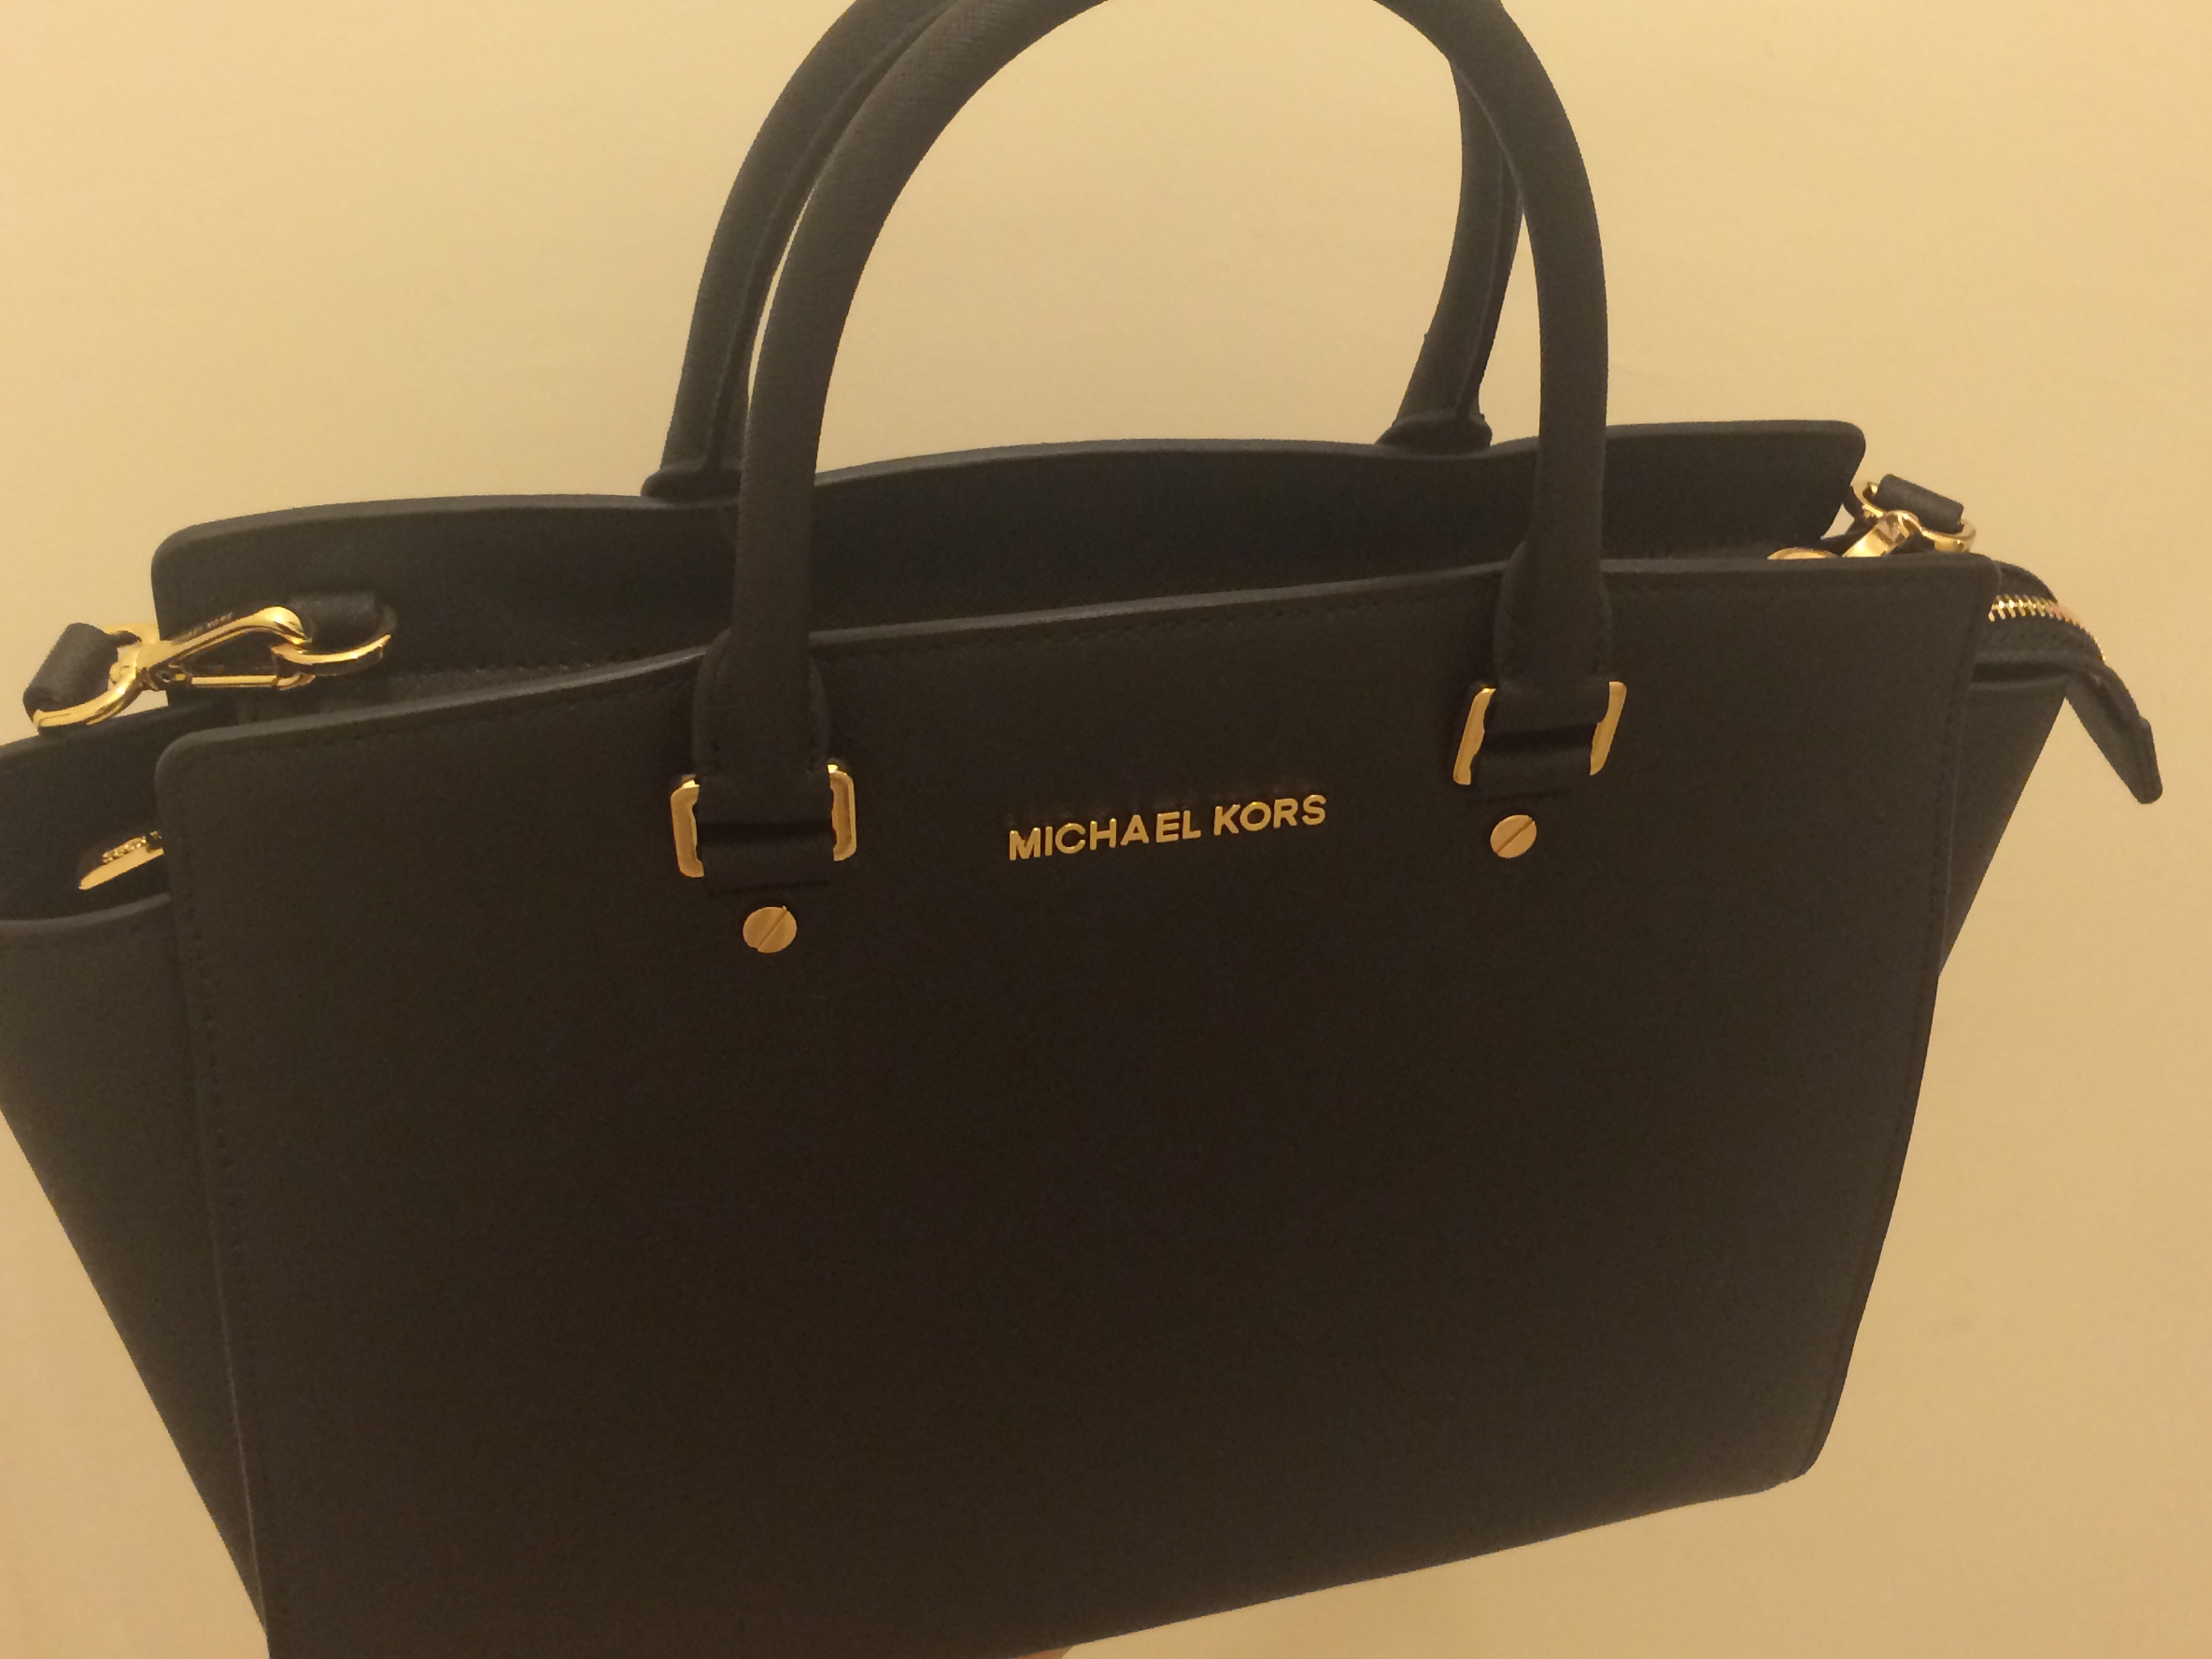 sac a main michael kors occasion